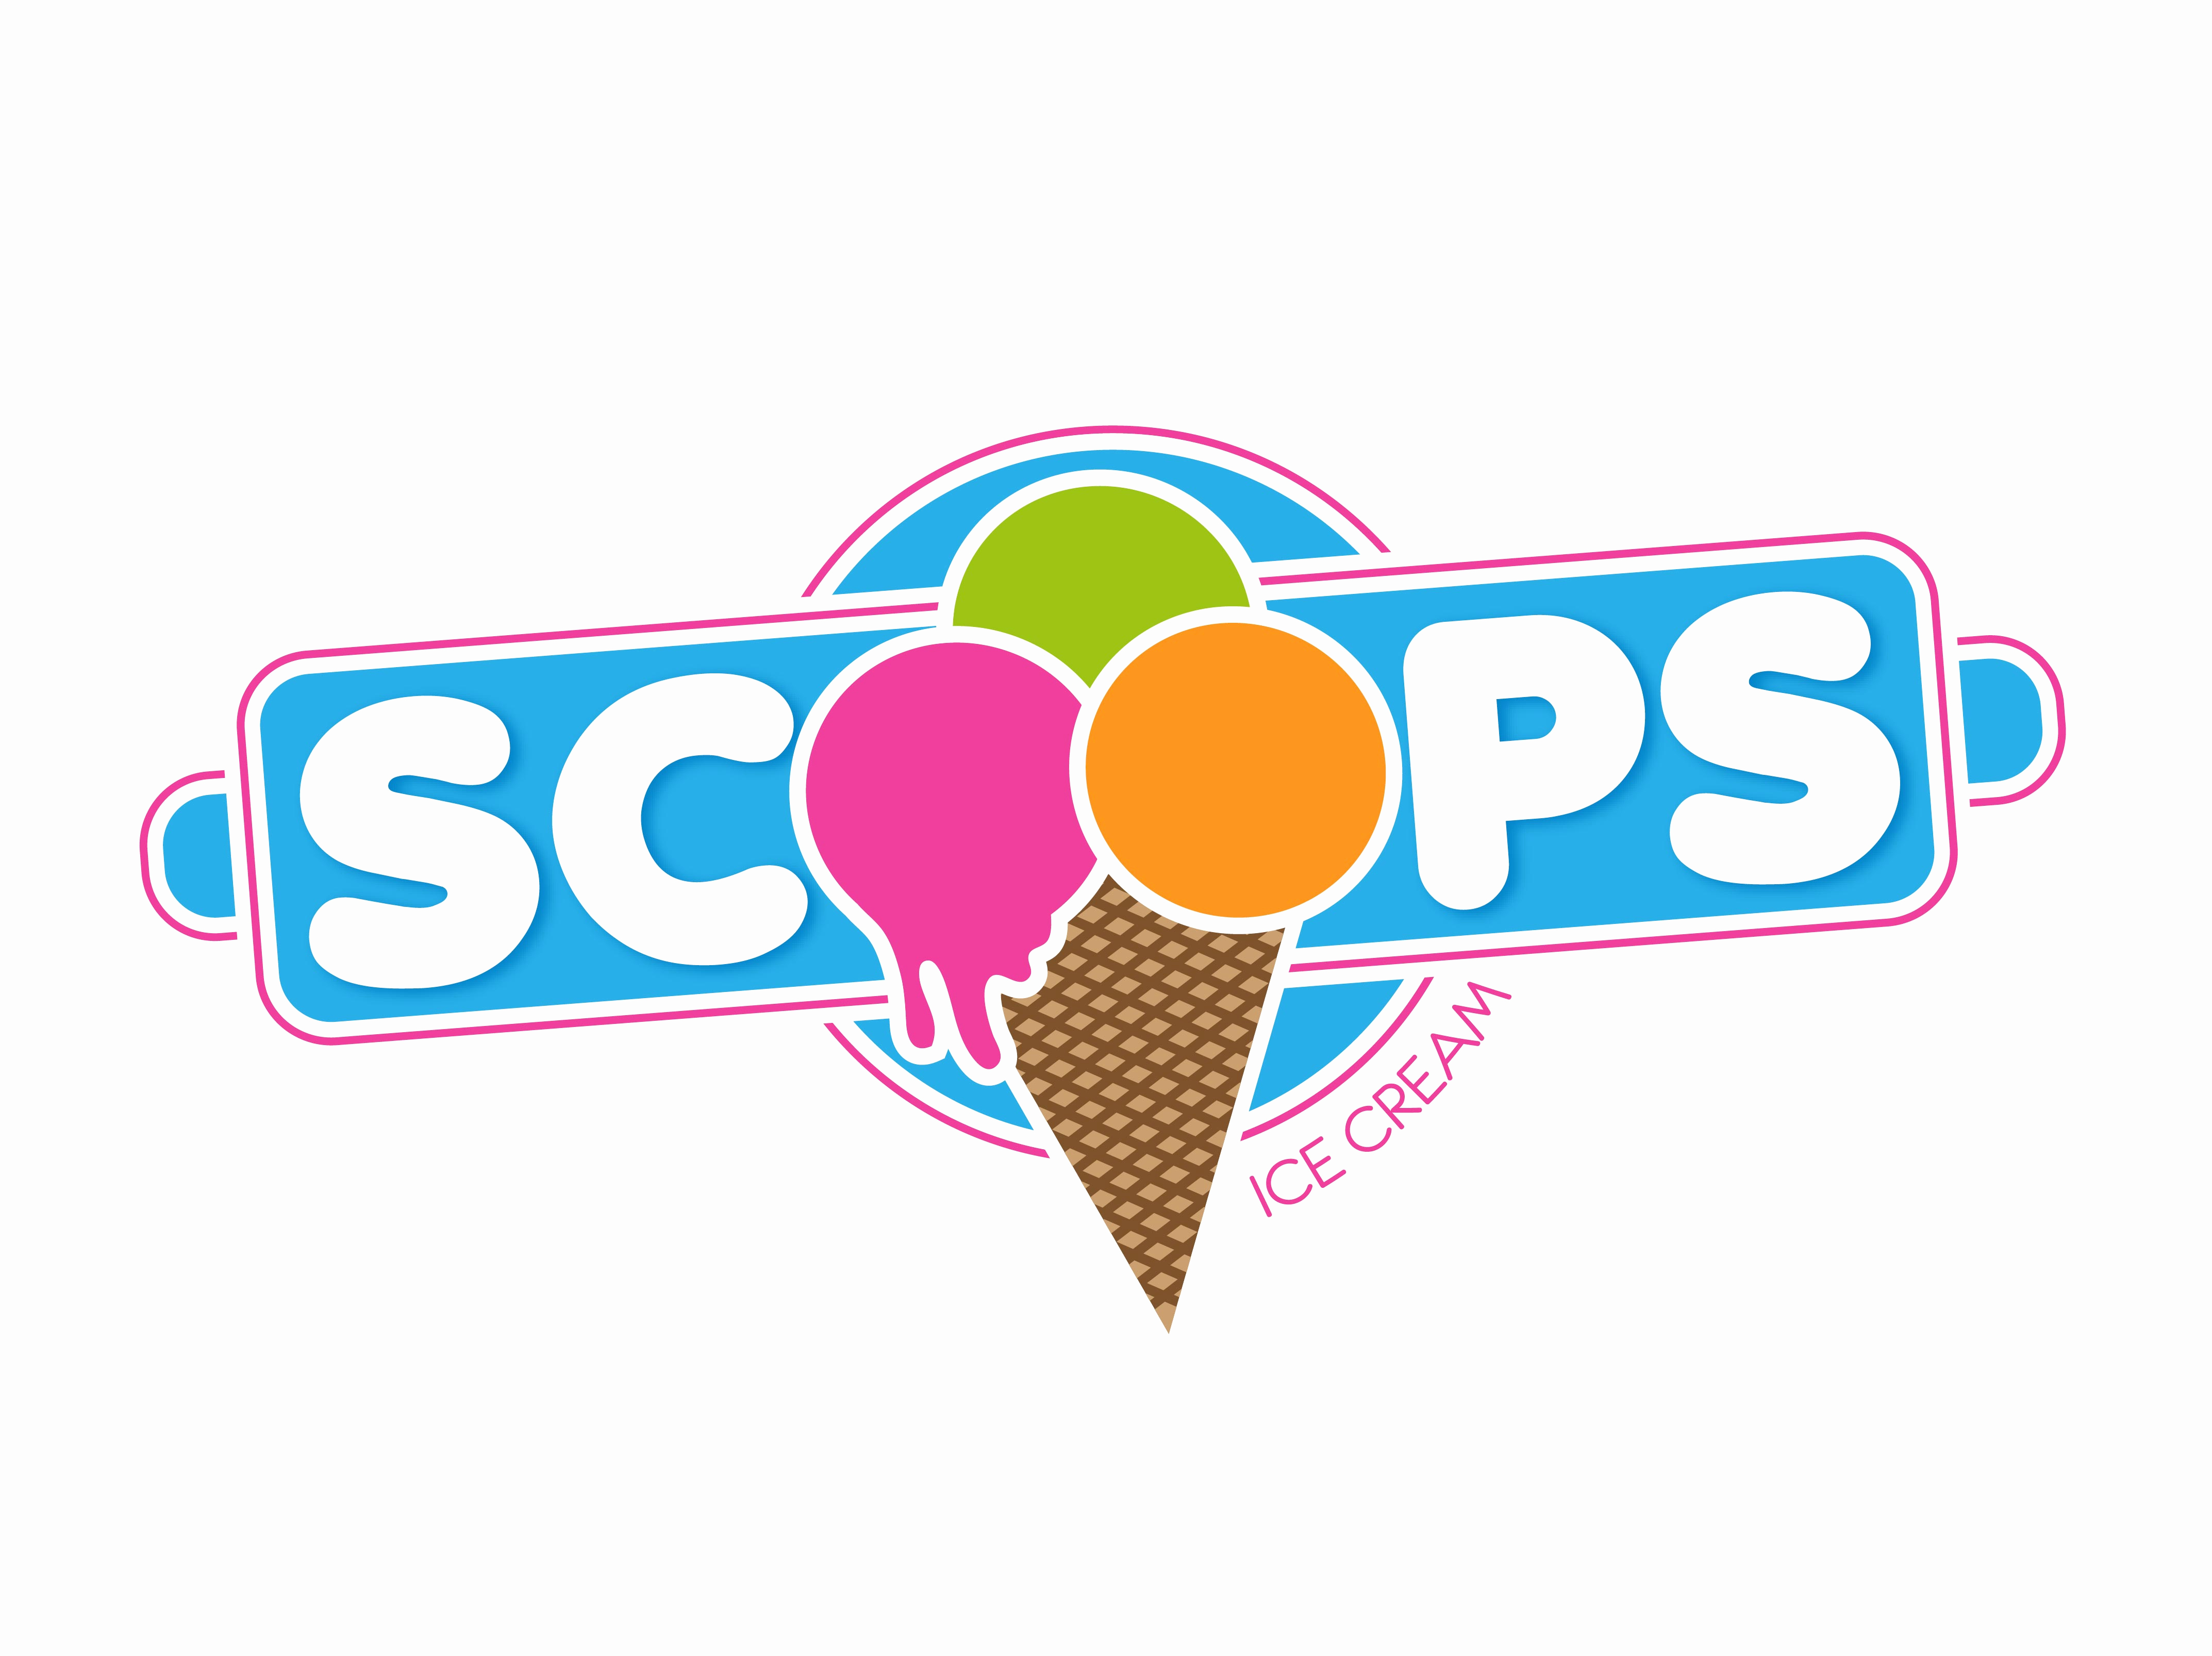 Ice Cream Shop Logo Inspirational Logo Design Contests Captivating Logo Design for Scoops